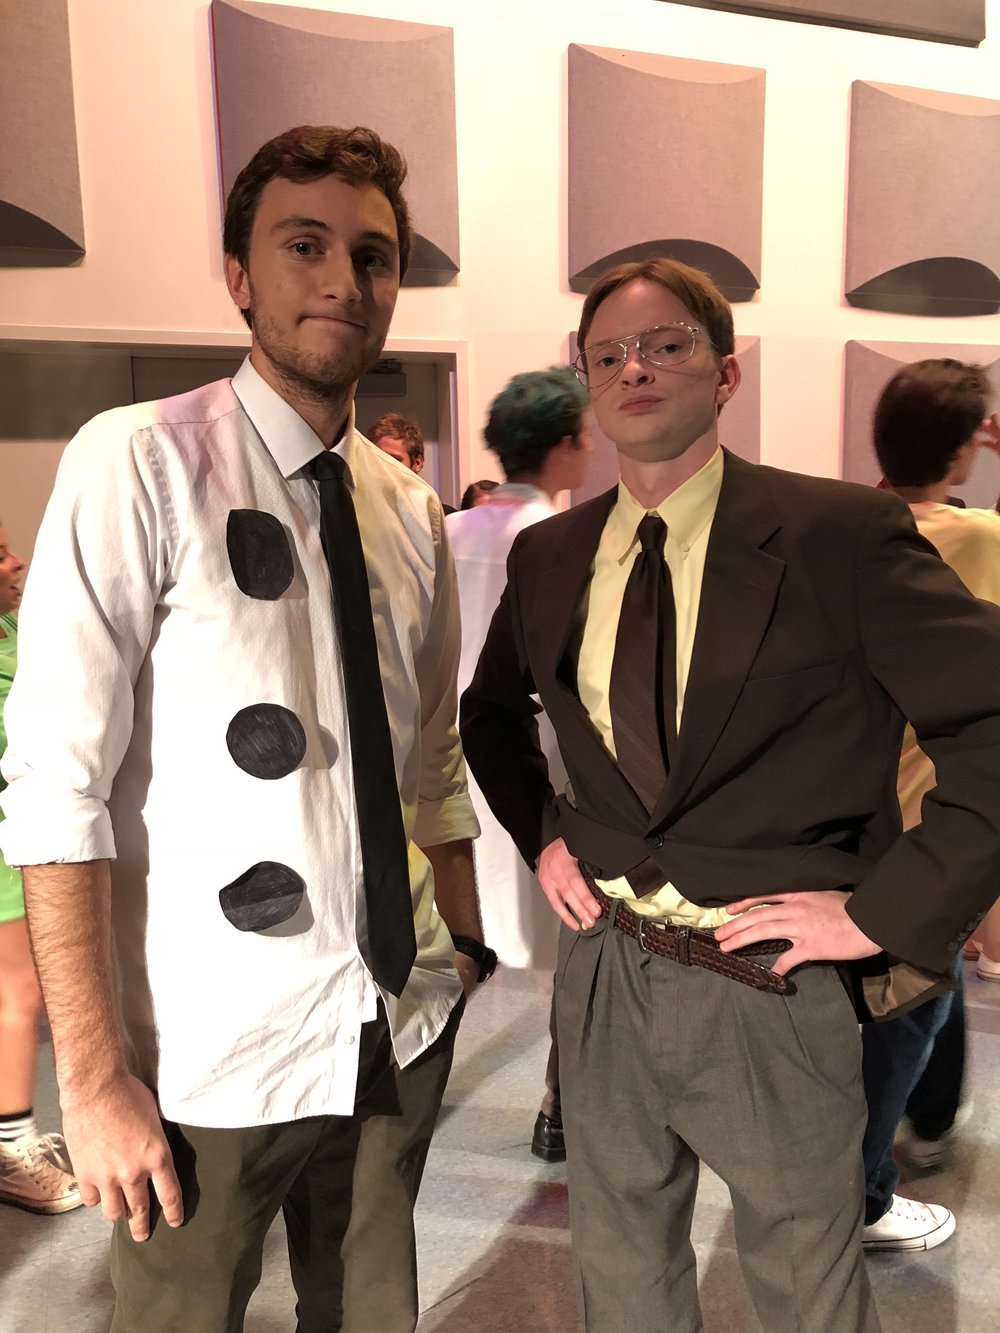 Seniors Samuel Heard and Hudson Tankersley won the Improv Show's costume contest as Dwight Shrute and Three-Hole-Punch Jim from the Office.